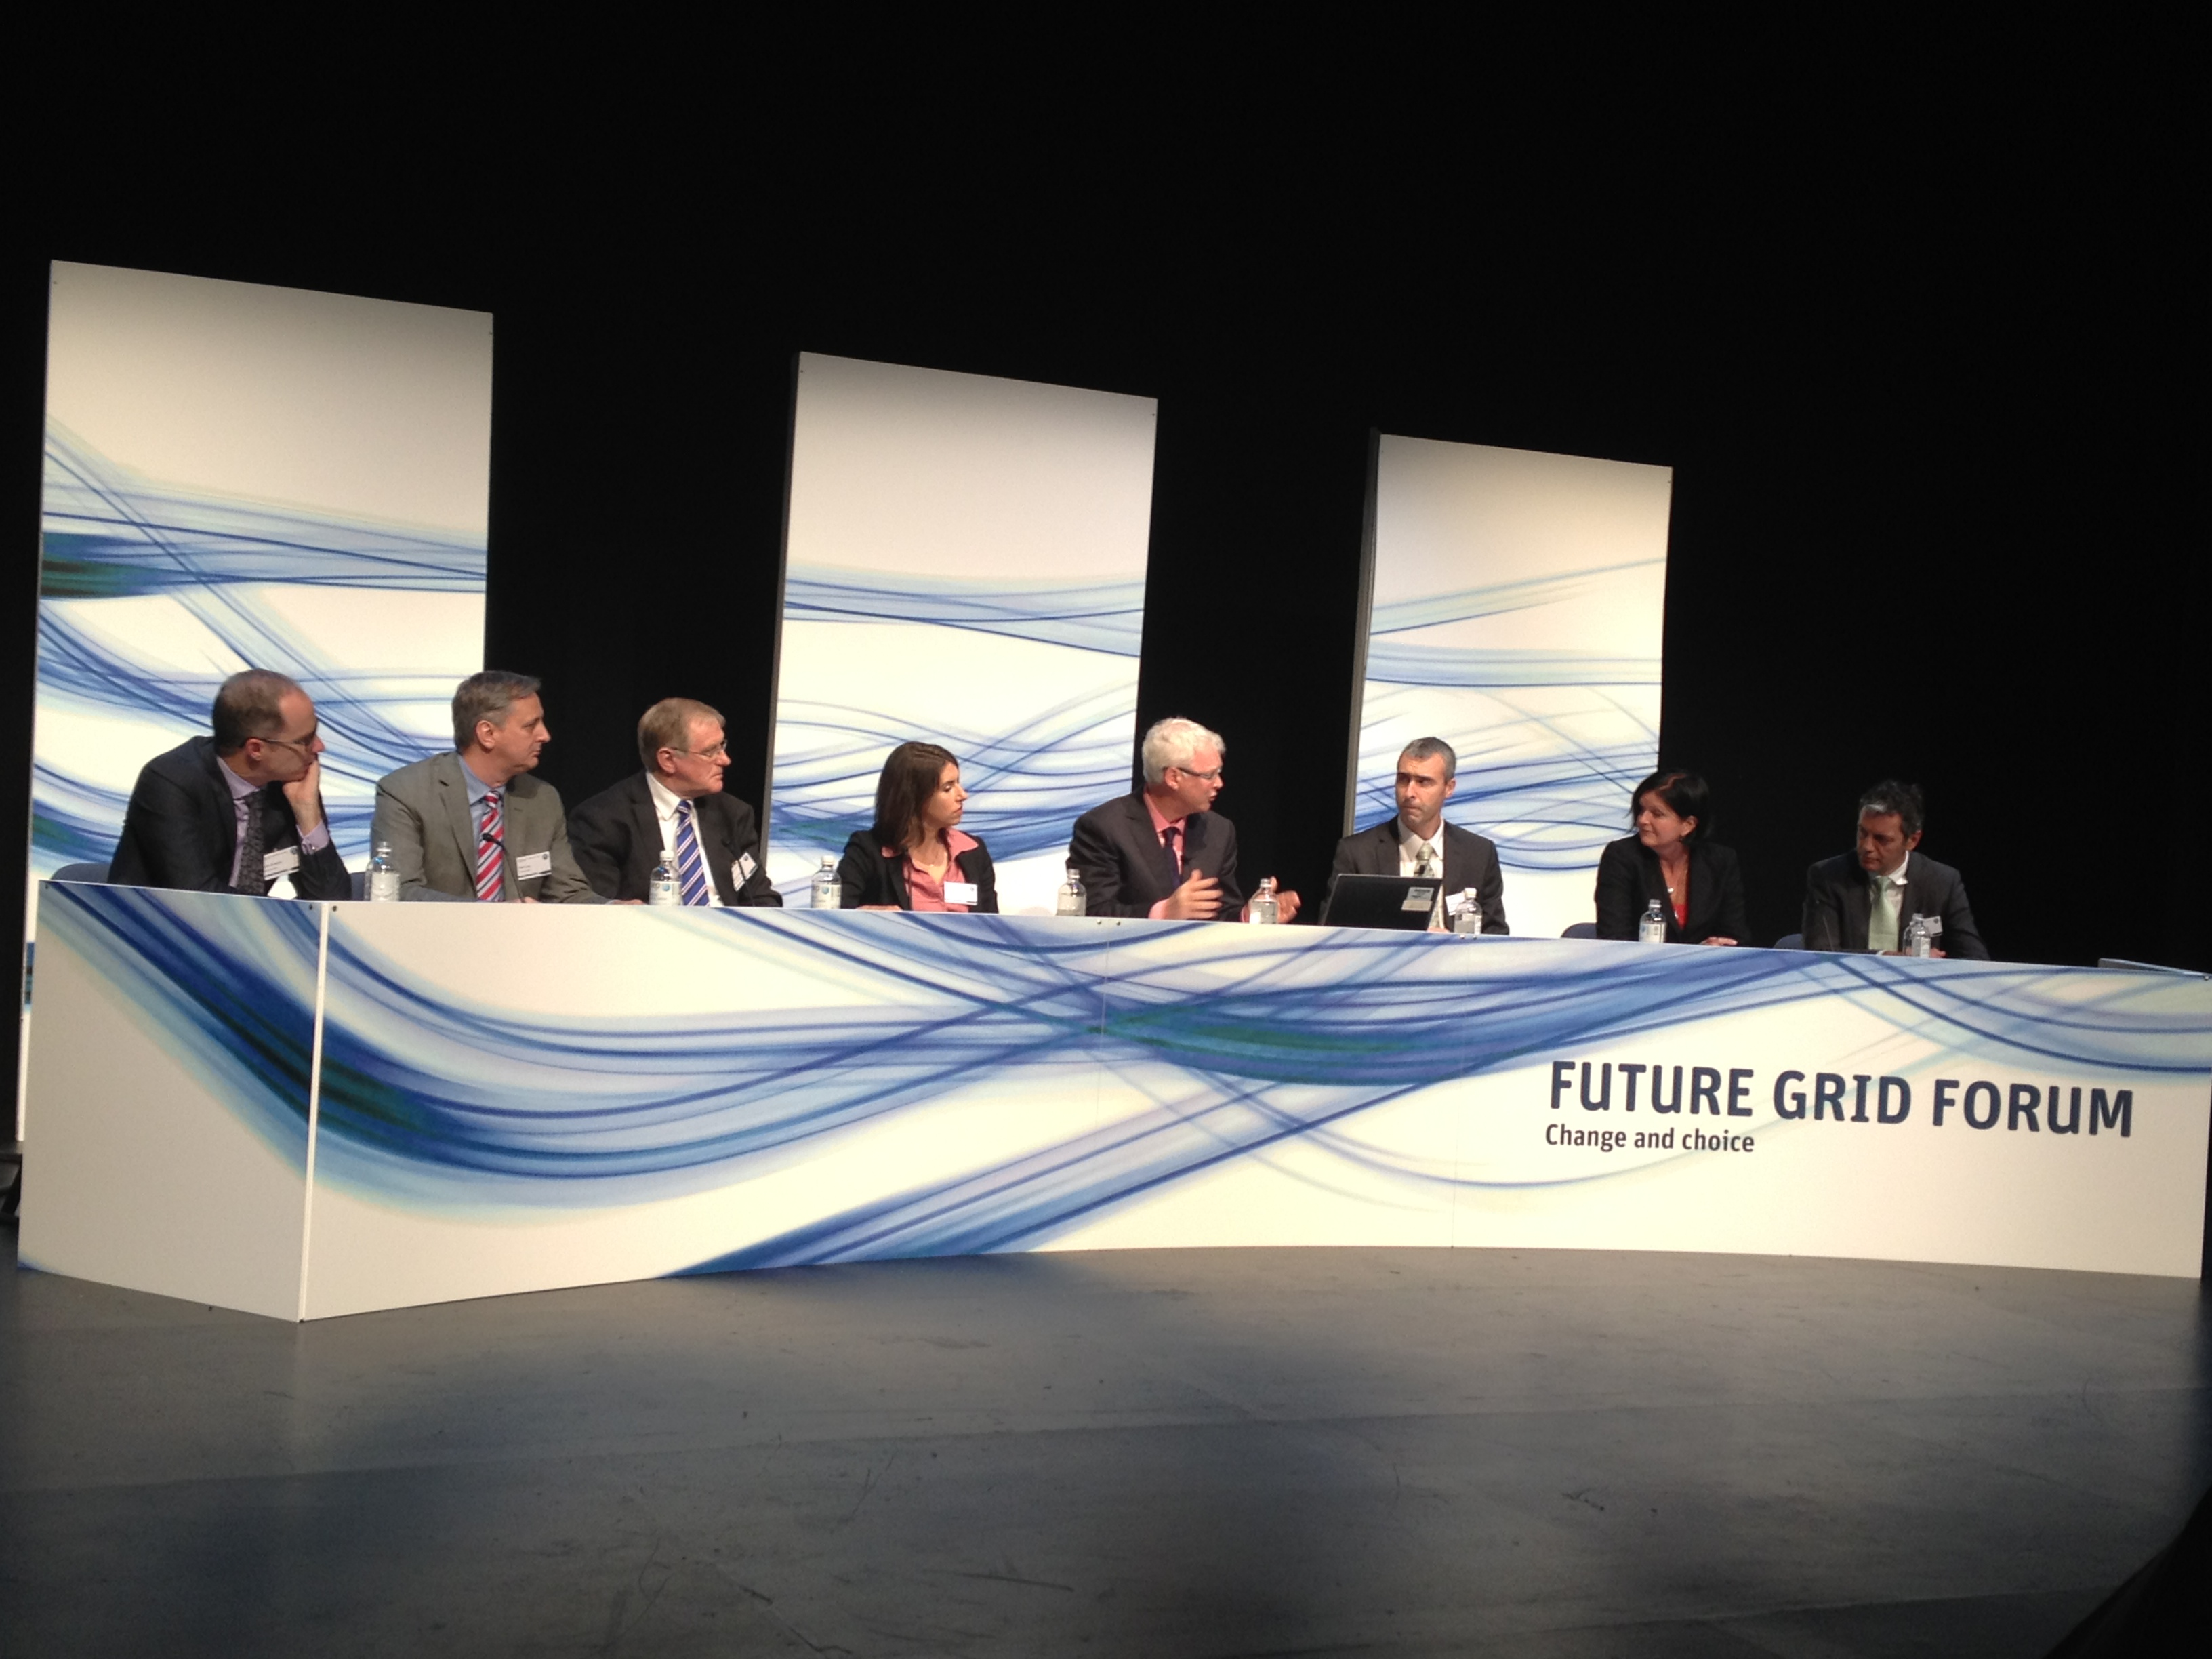 Future Grid Forum speaker panel